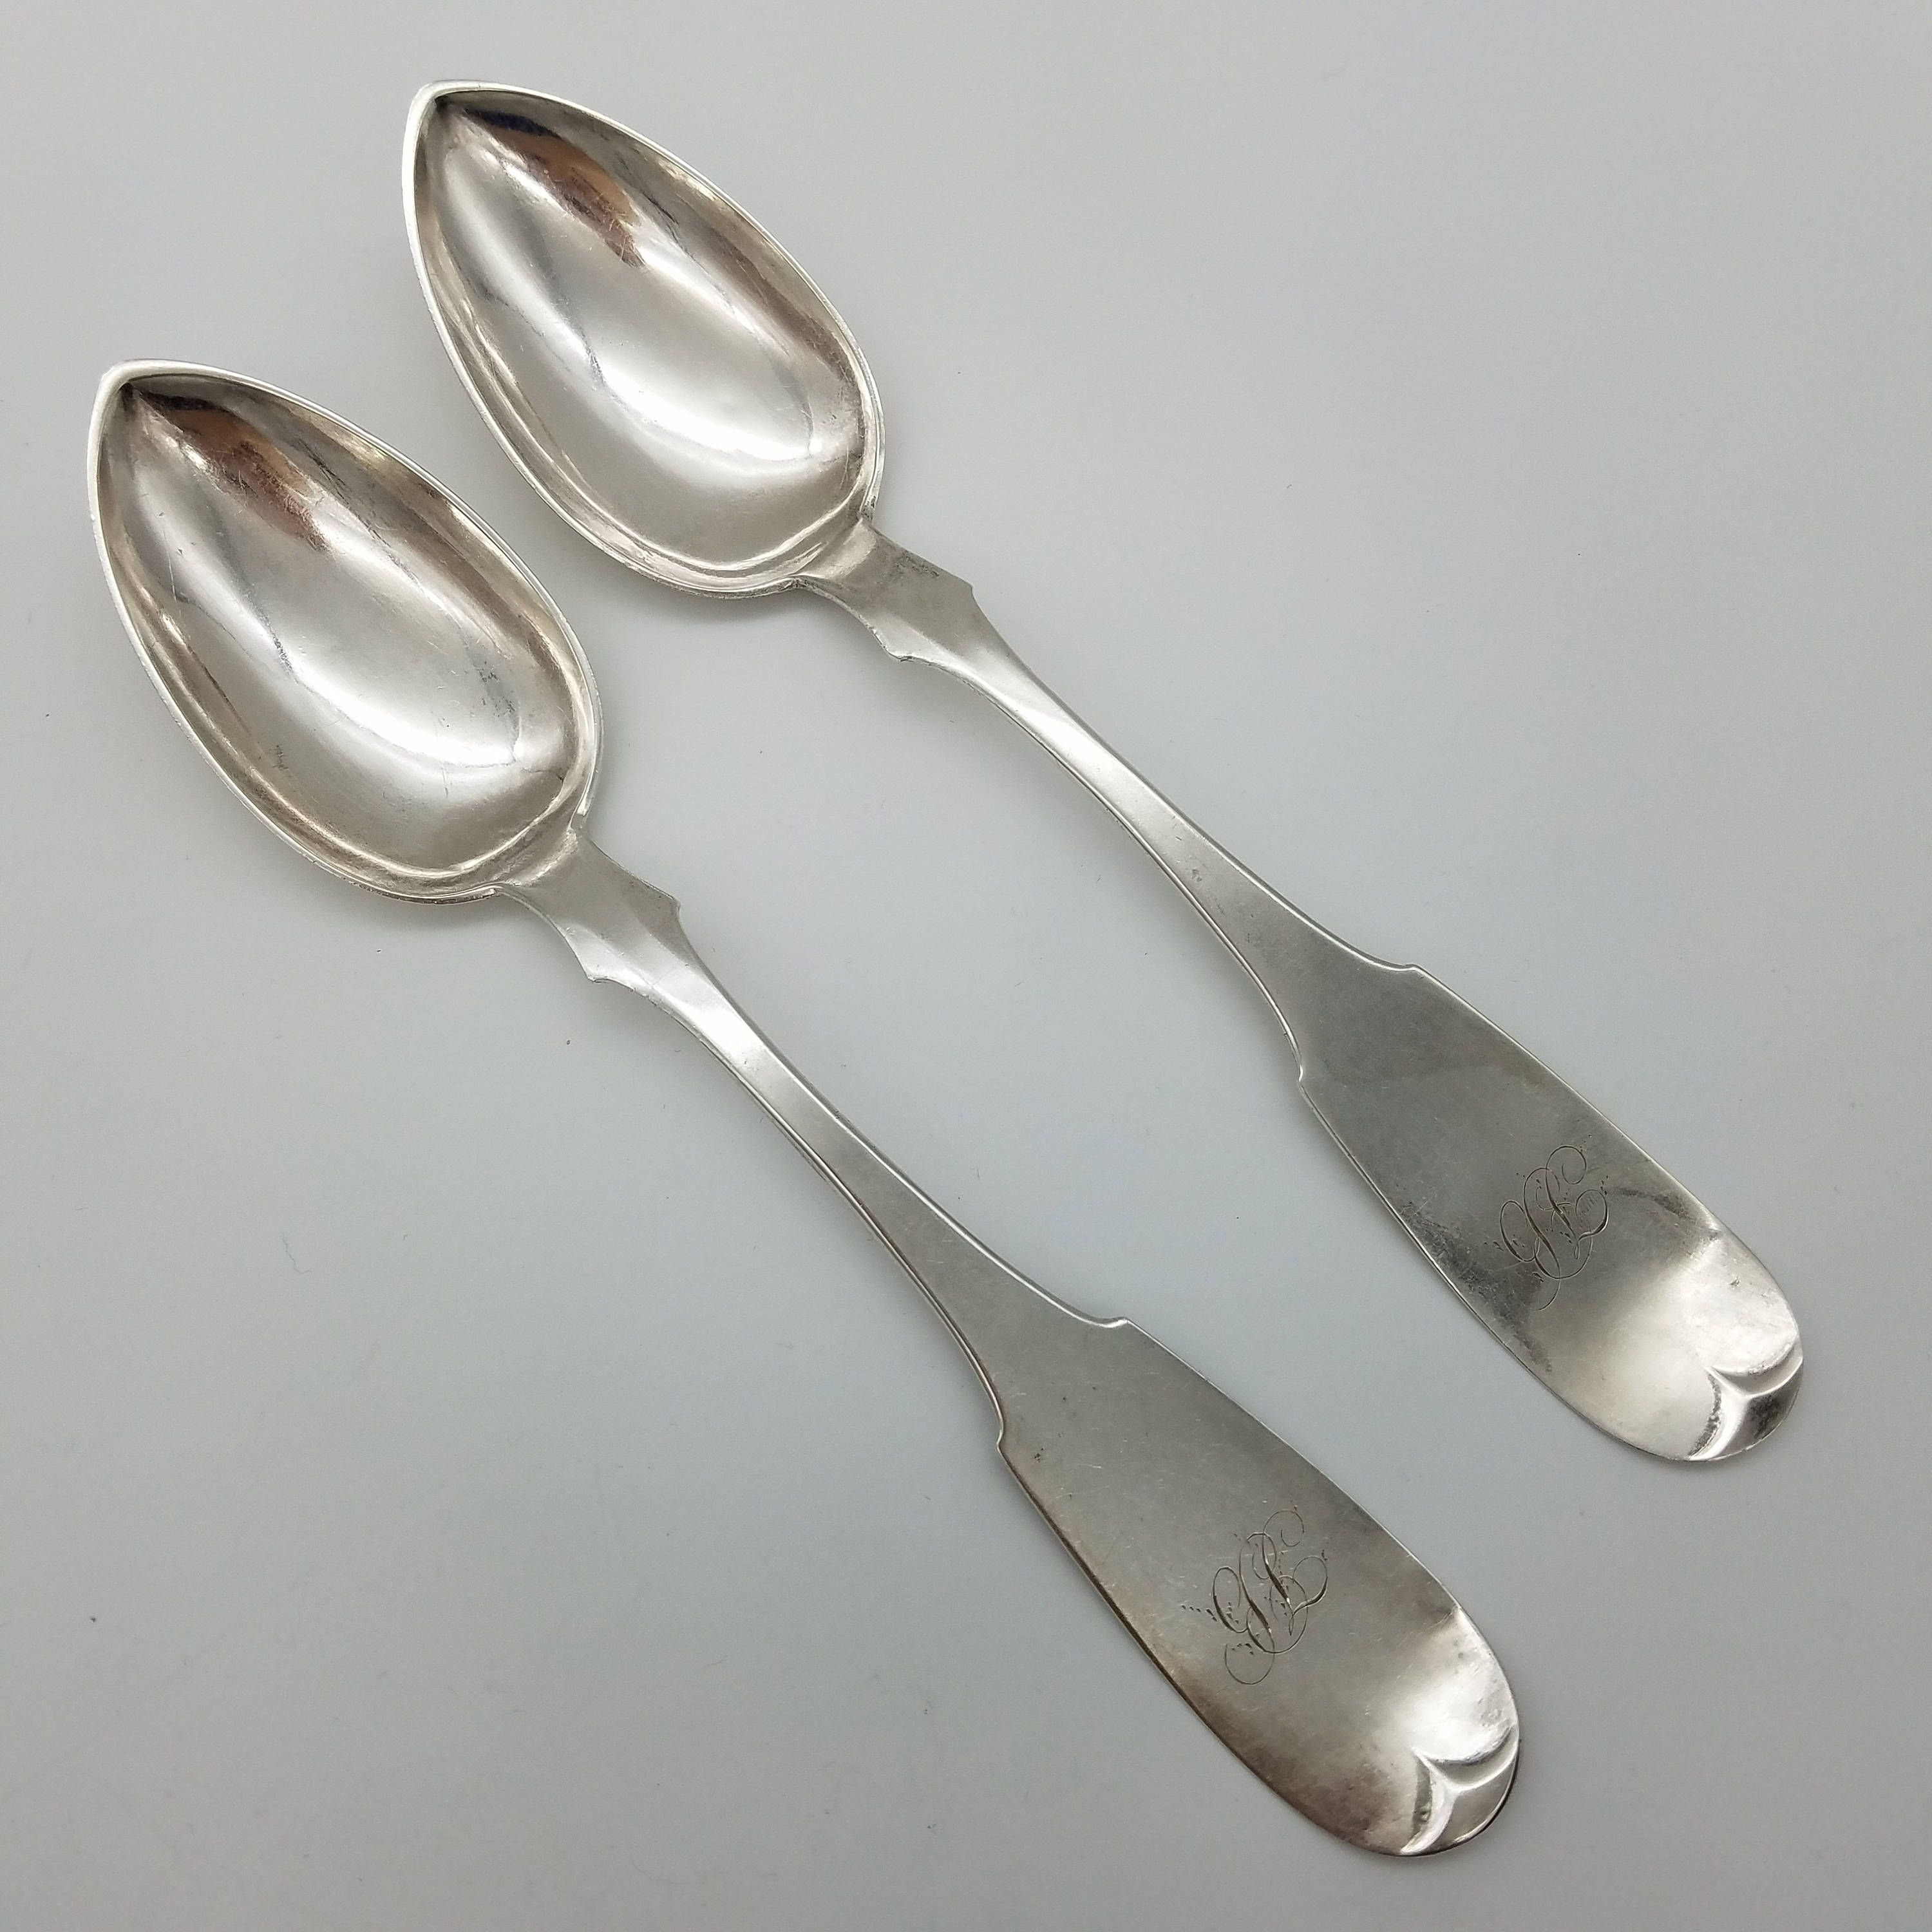 Very Rare Butler Mccarty Co Antique Coin Silver Serving Table Spoon Pattern B1m2 Circa 1850 Sold Individually By Thingsgrandmakept1 On Etsy